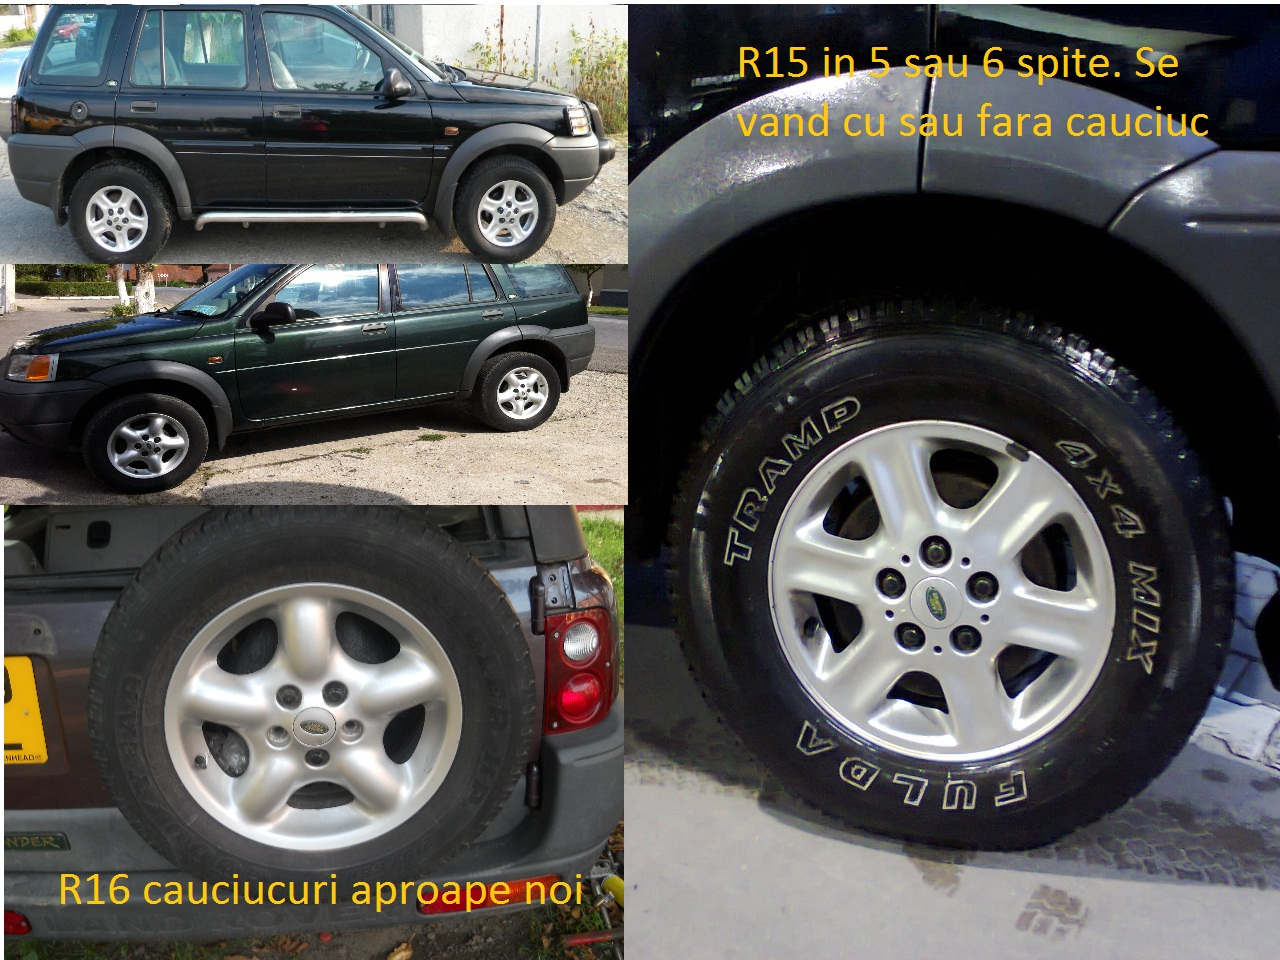 Piese Land Rover Freelander - 10 Noiembrie 2012 - Poza 2